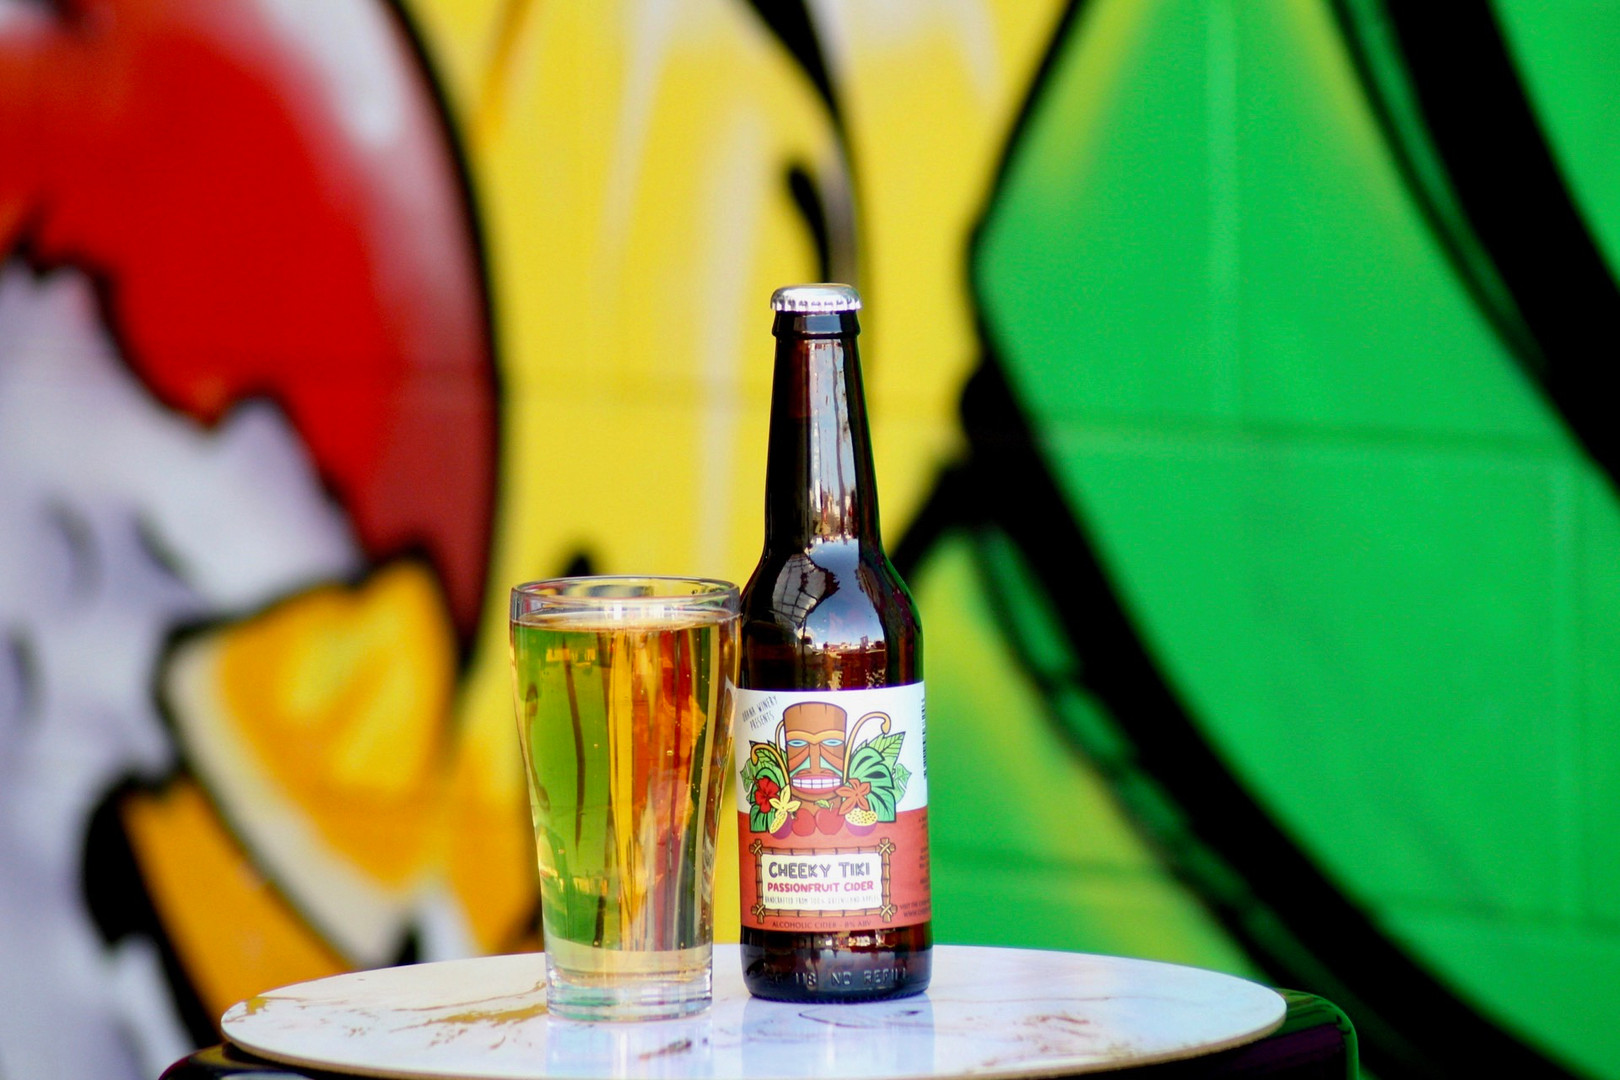 A bottle of passionfruit cider next to a glass of cider with colourful background